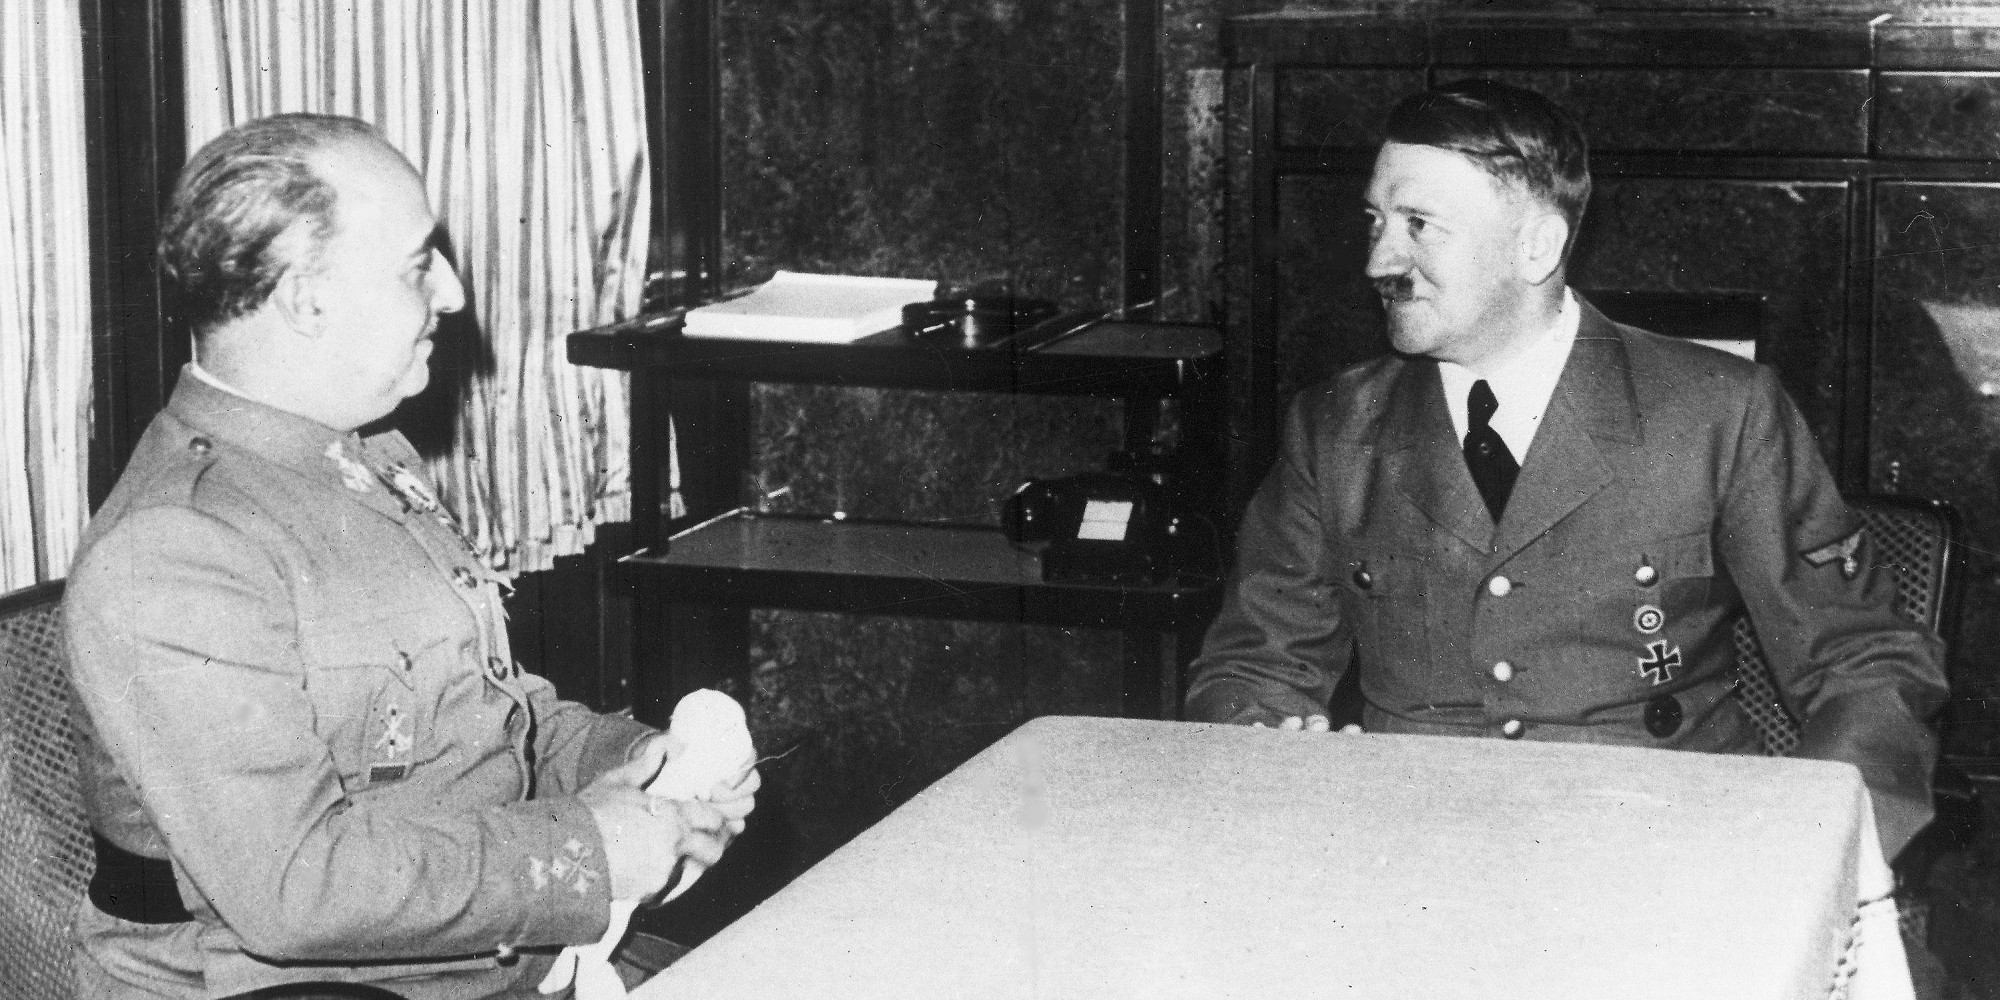 German Chancellor Adolf Hitler, right, talks with Spain's Generalissimo Franco, in Hendaye, France, Oct. 23, 1940, in Hitlers railway carriage during his trip to France, Spain and Italy. (AP Photo)